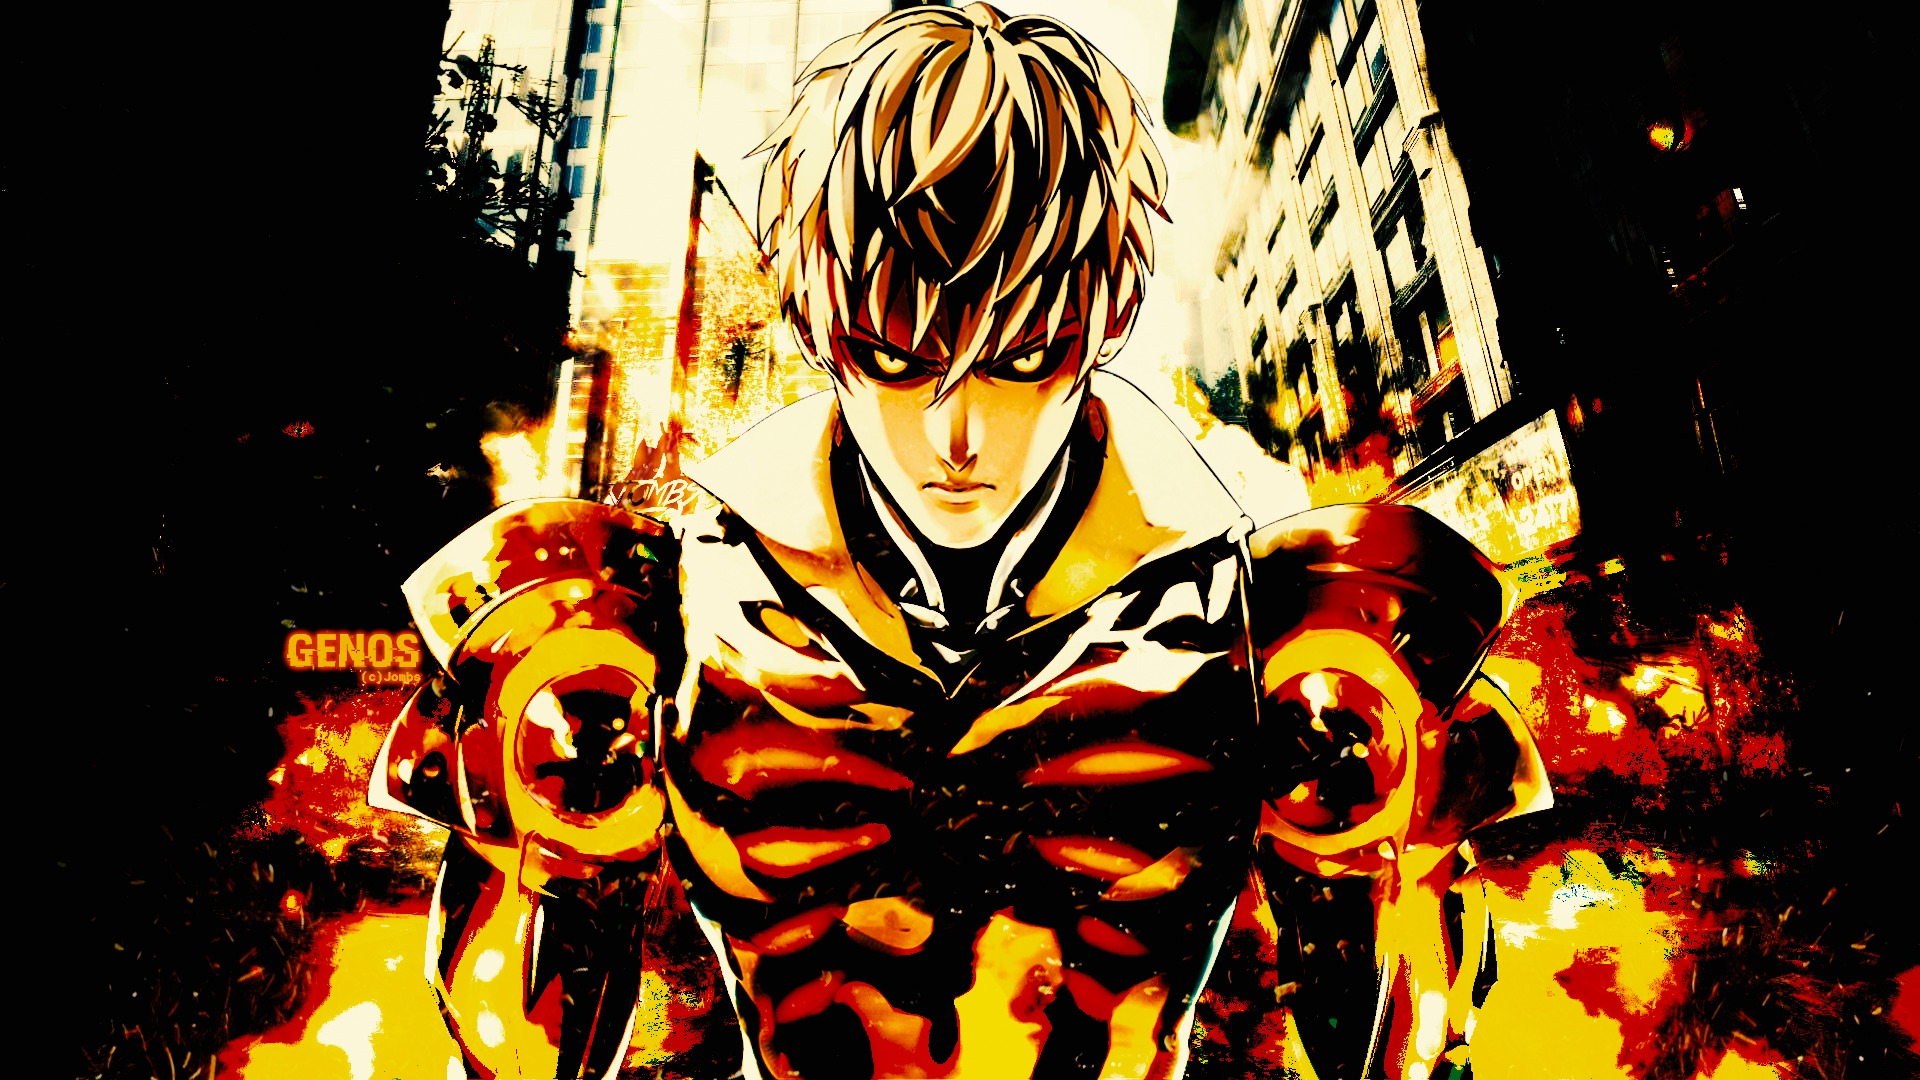 Download Wallpaper From Anime One Punch Man With Tags Imac